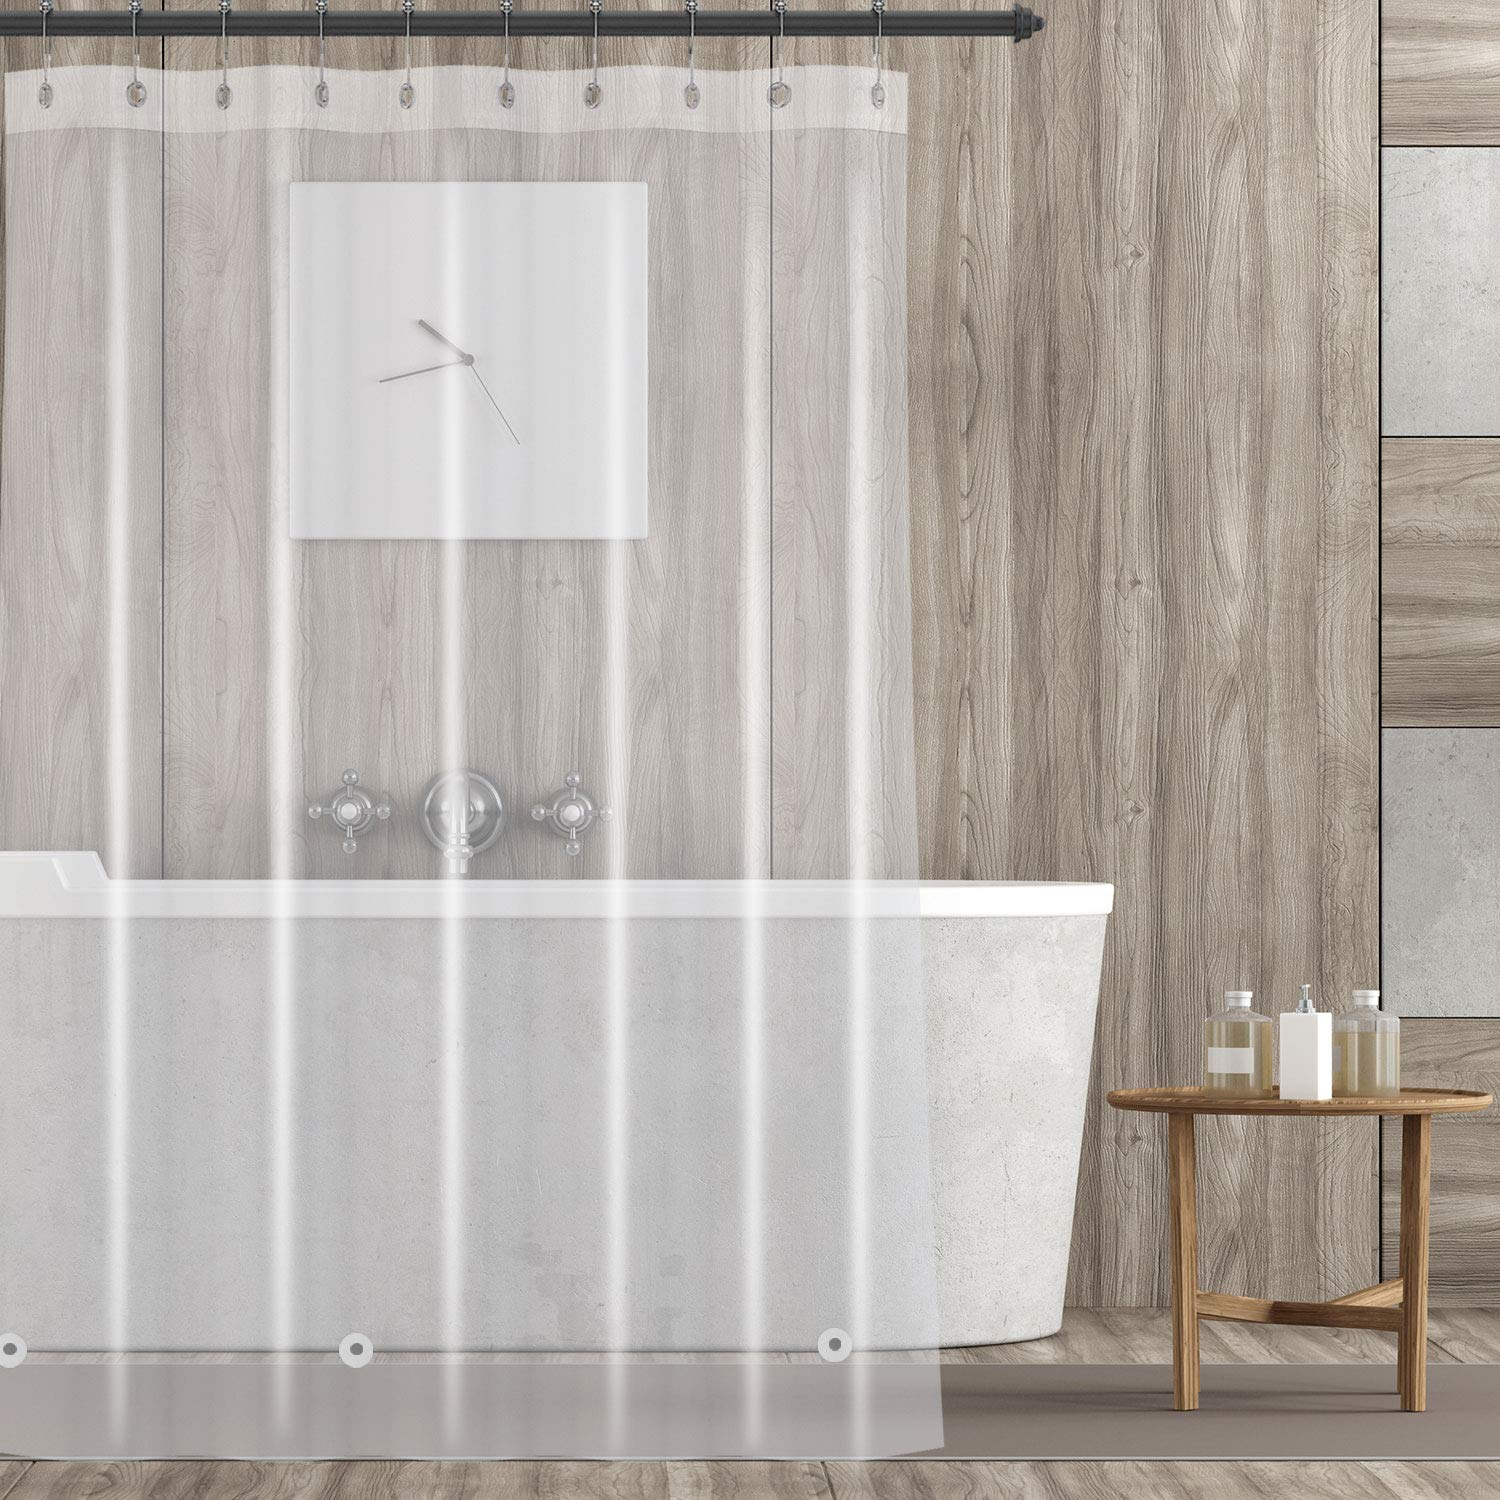 No Chemical Smell-Rust Proof Metal Grommets-72x72 Clear YINENN Shower Curtain Liner with 12 Metal Shower Hooks,Heavy Duty PEVA 8G Mildew and Stain Resistant,Anti Bacterial,Waterproof,Nontoxic